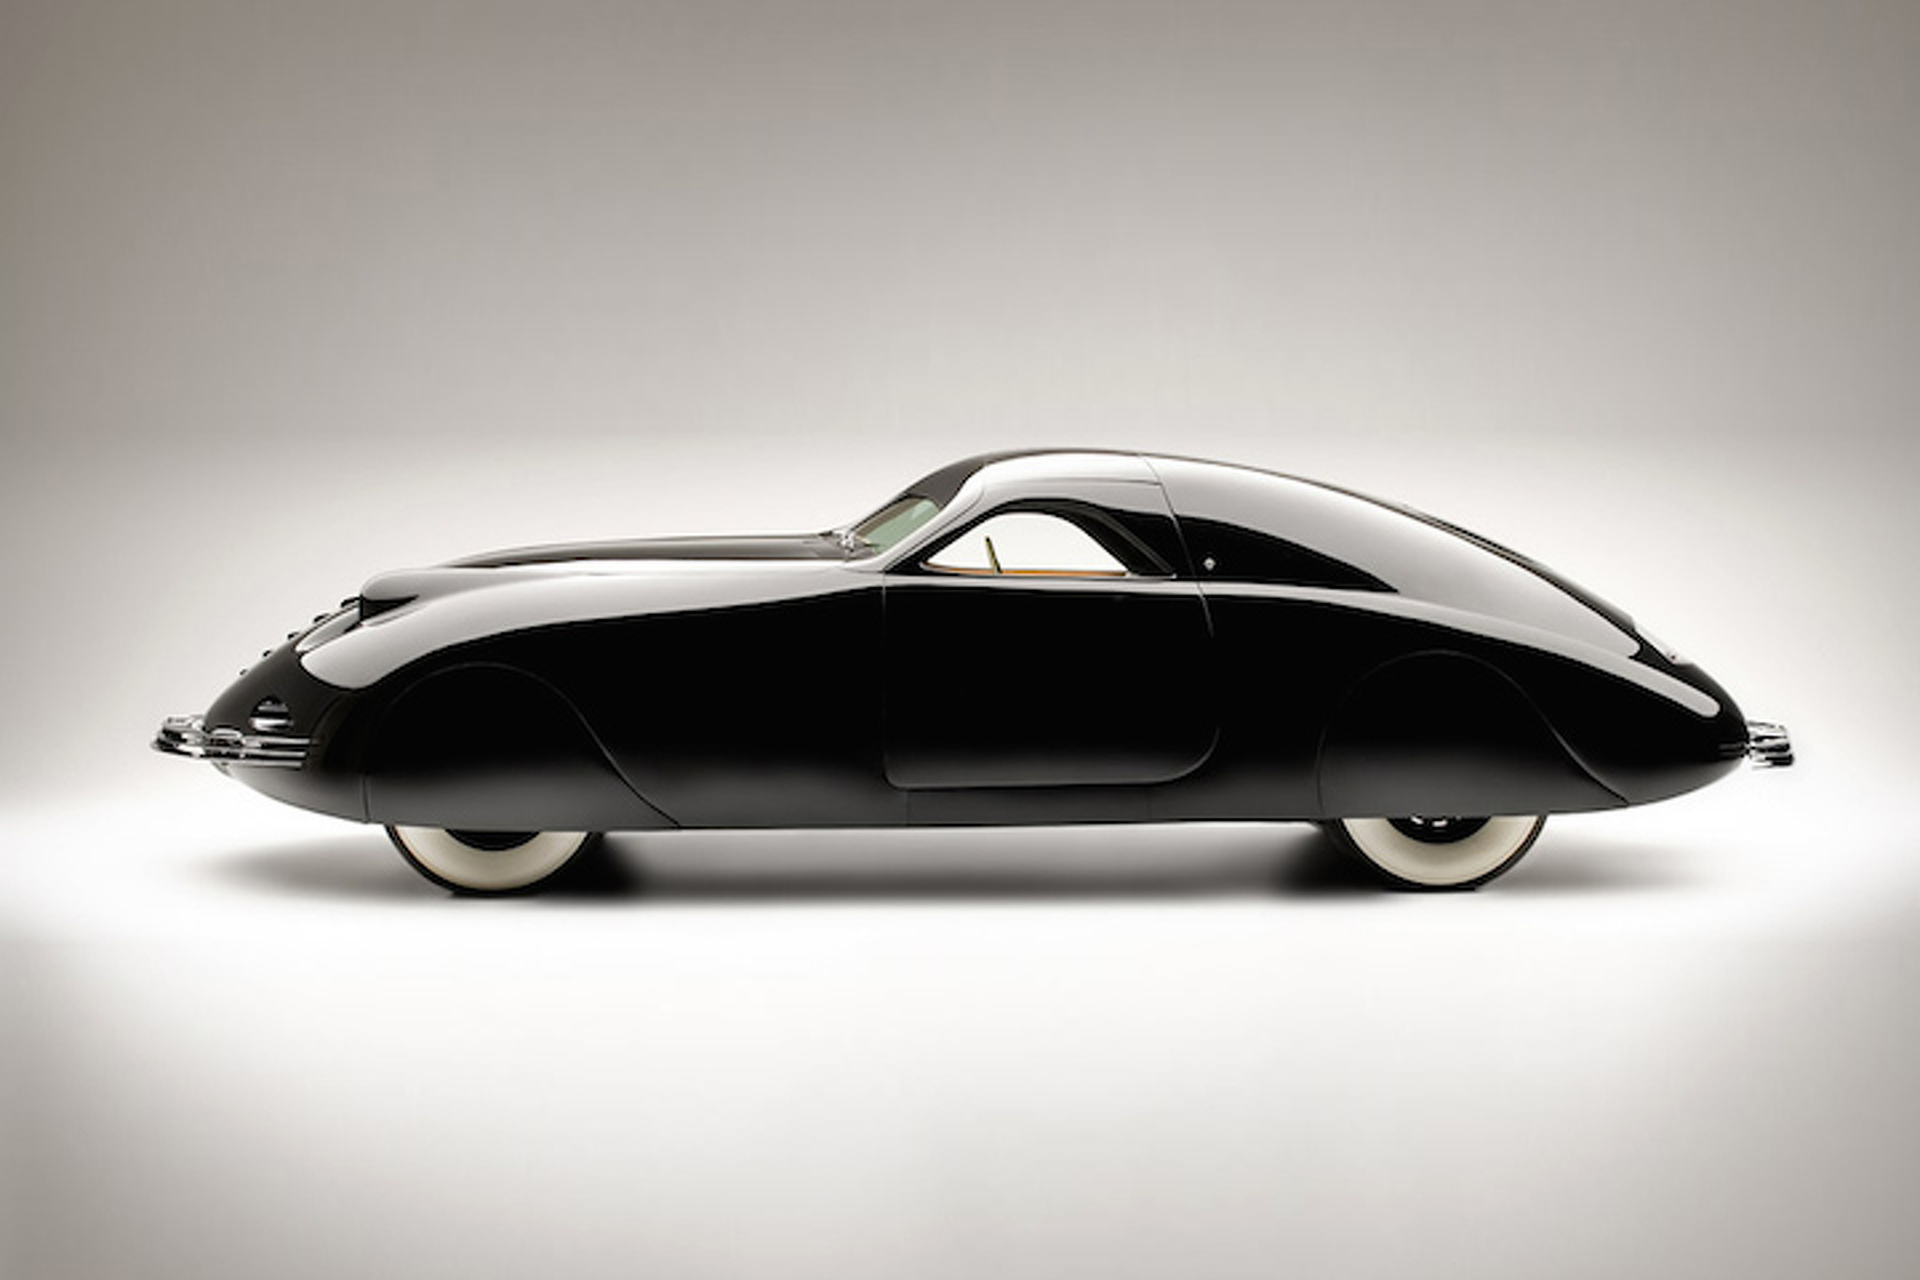 The 1938 Phantom Corsair: A Glimpse of the Future from the Past